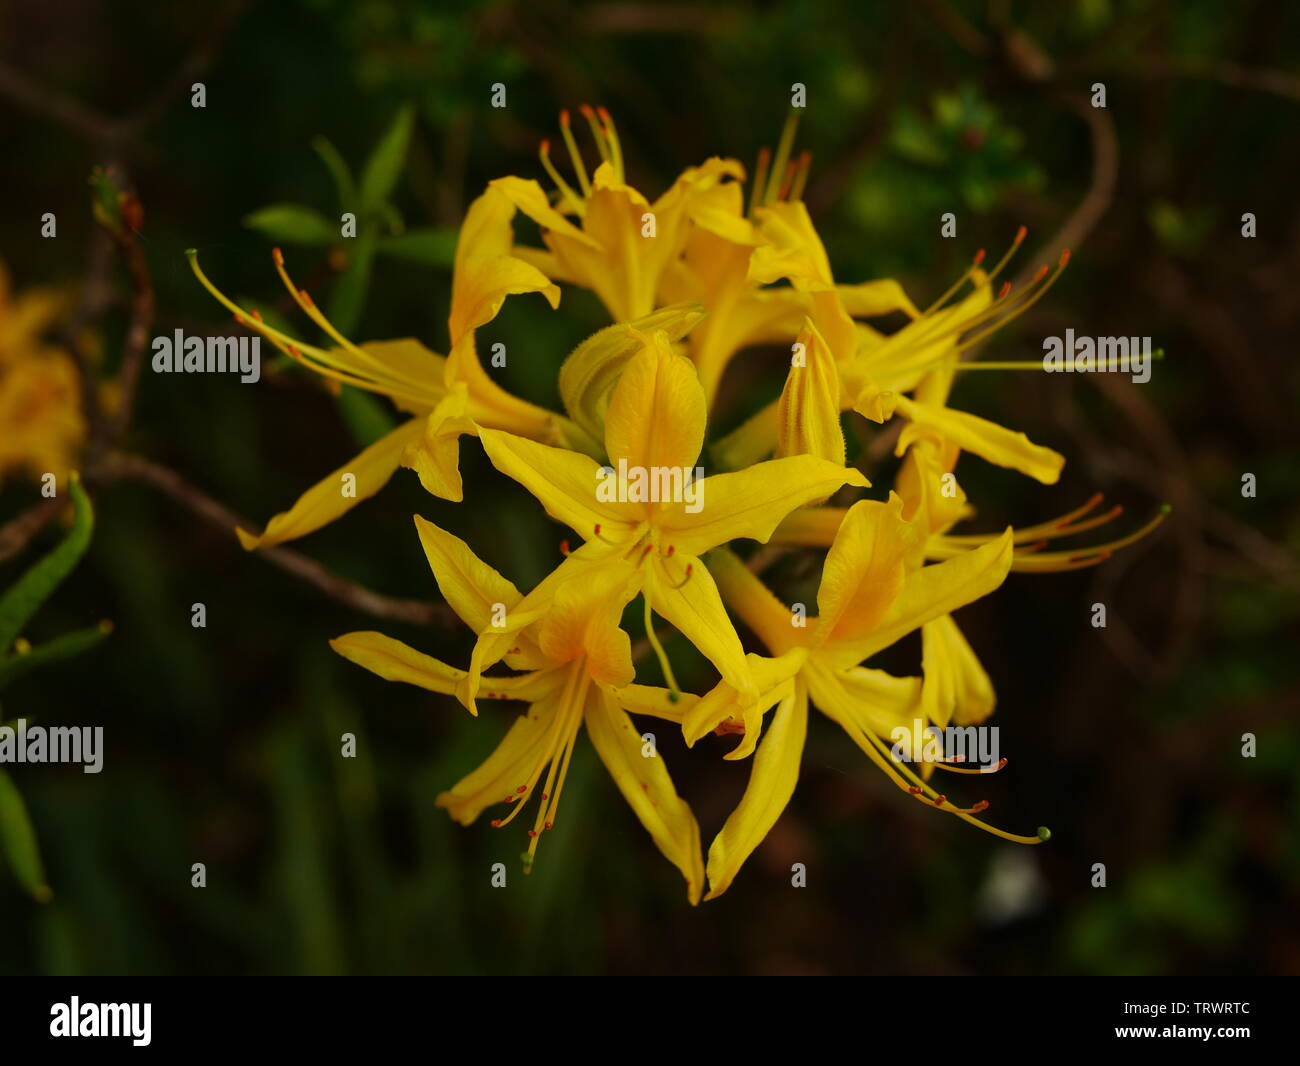 Close up of a yellow rhododendron luteum flower - Stock Image